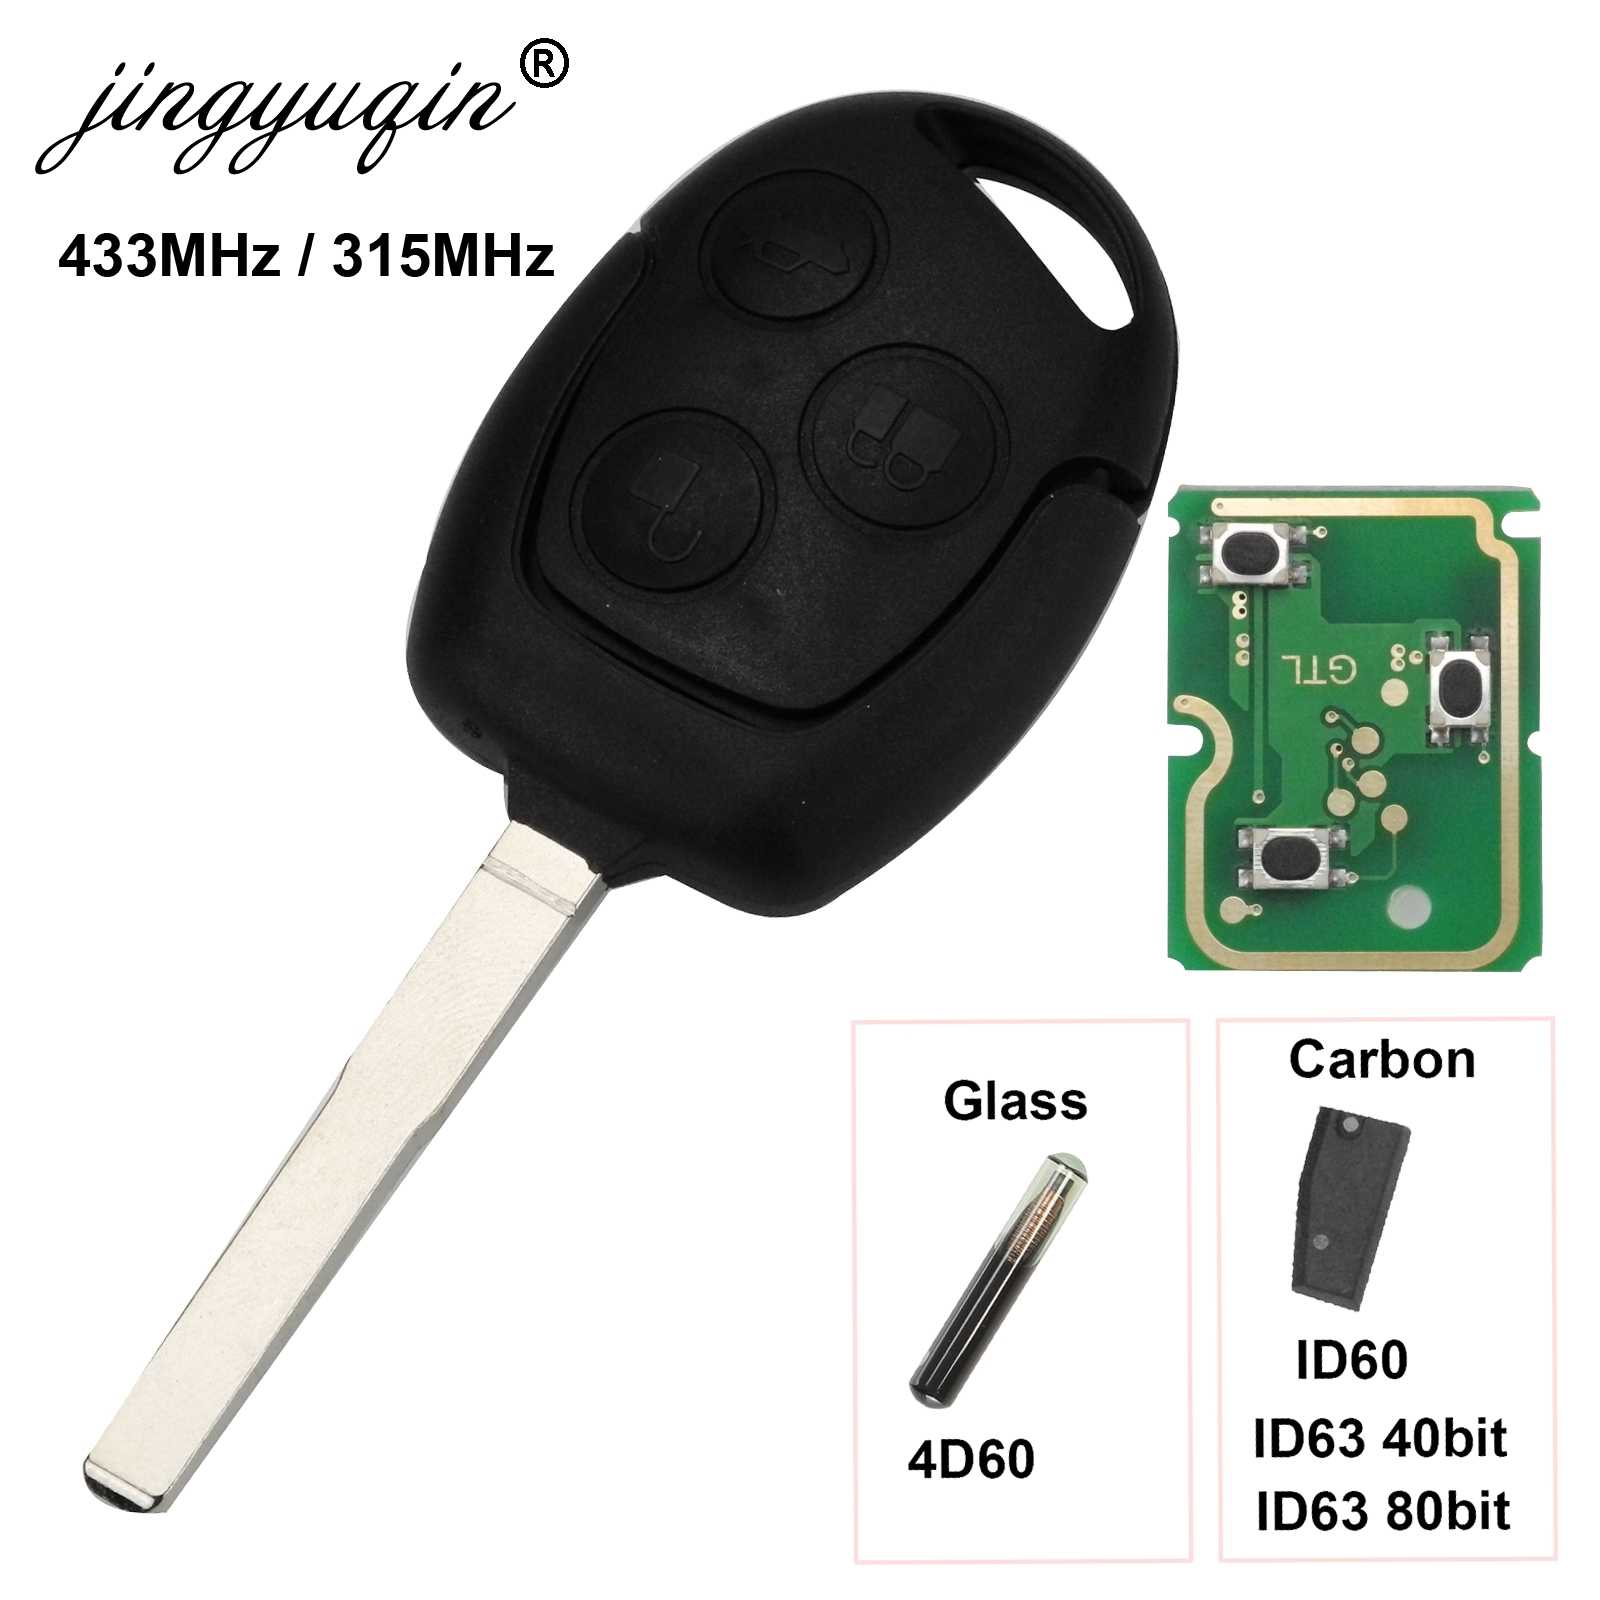 Jingyuqin 3 Knoppen Afstandsbediening Autosleutel 315/433Mhz Voor Ford Focus Fiesta Fusion C-Max Mondeo Galaxy c-Max S-Max ID60 4D63 Chip